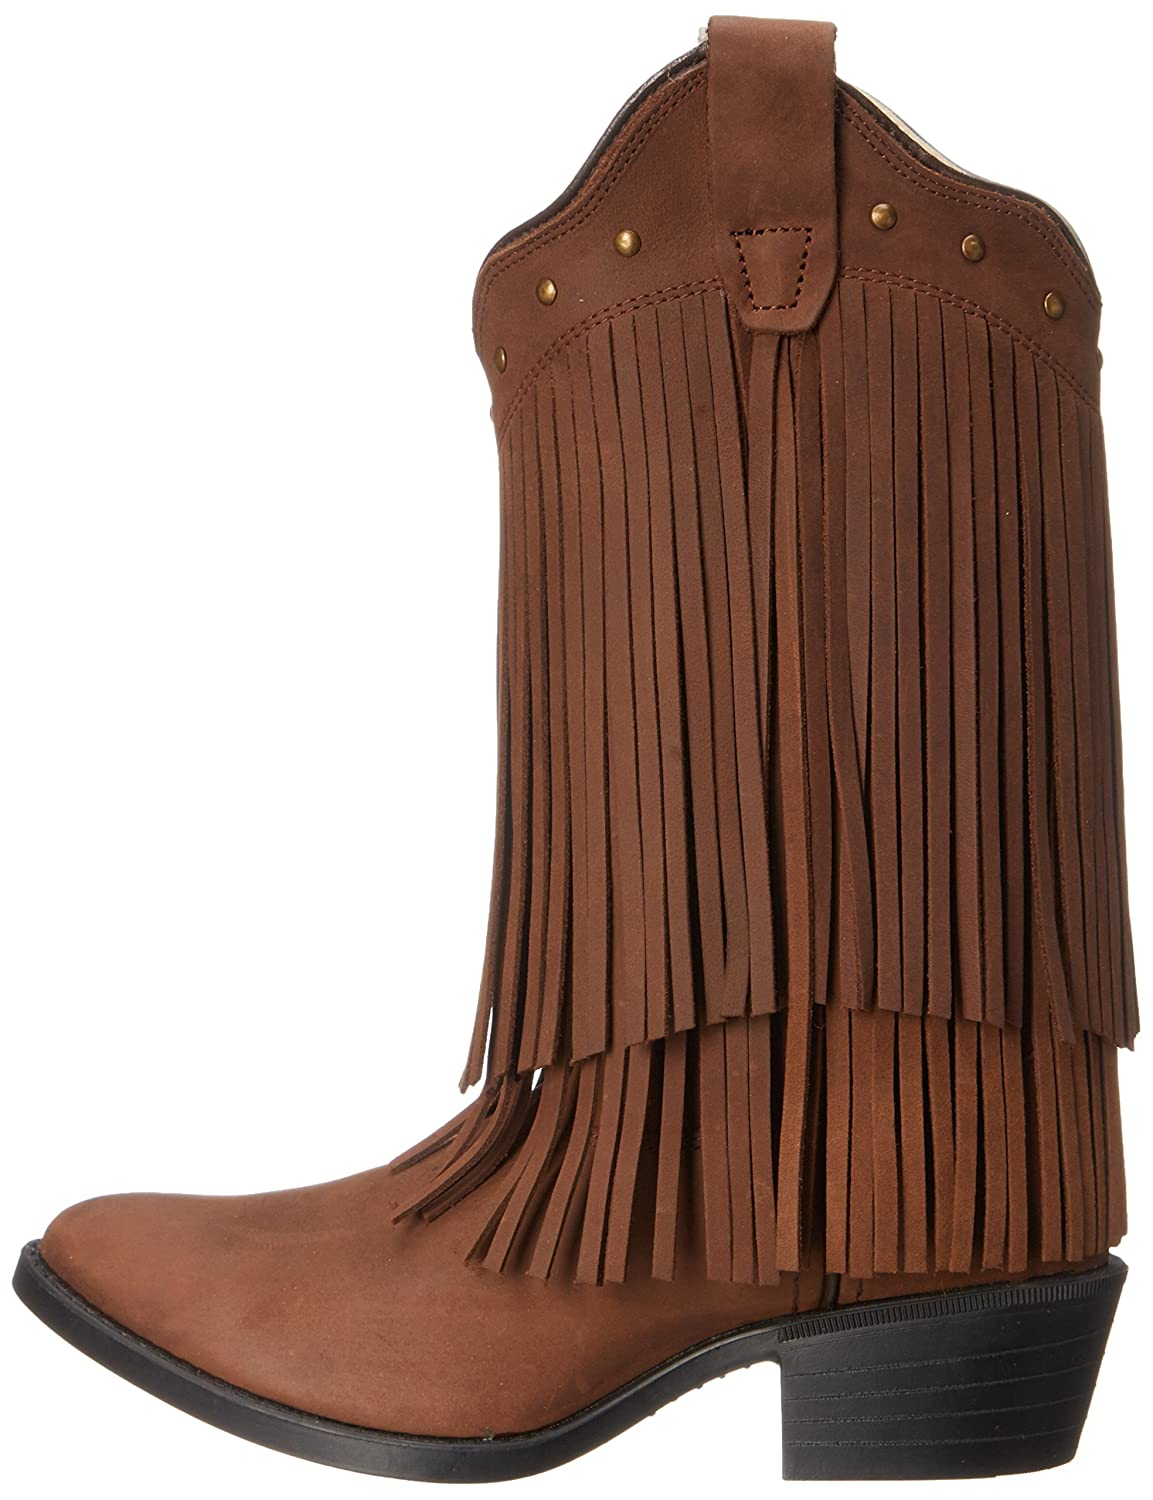 Old West Jama Corporation Boys Kids Brown Fringe Cowgirl Boots